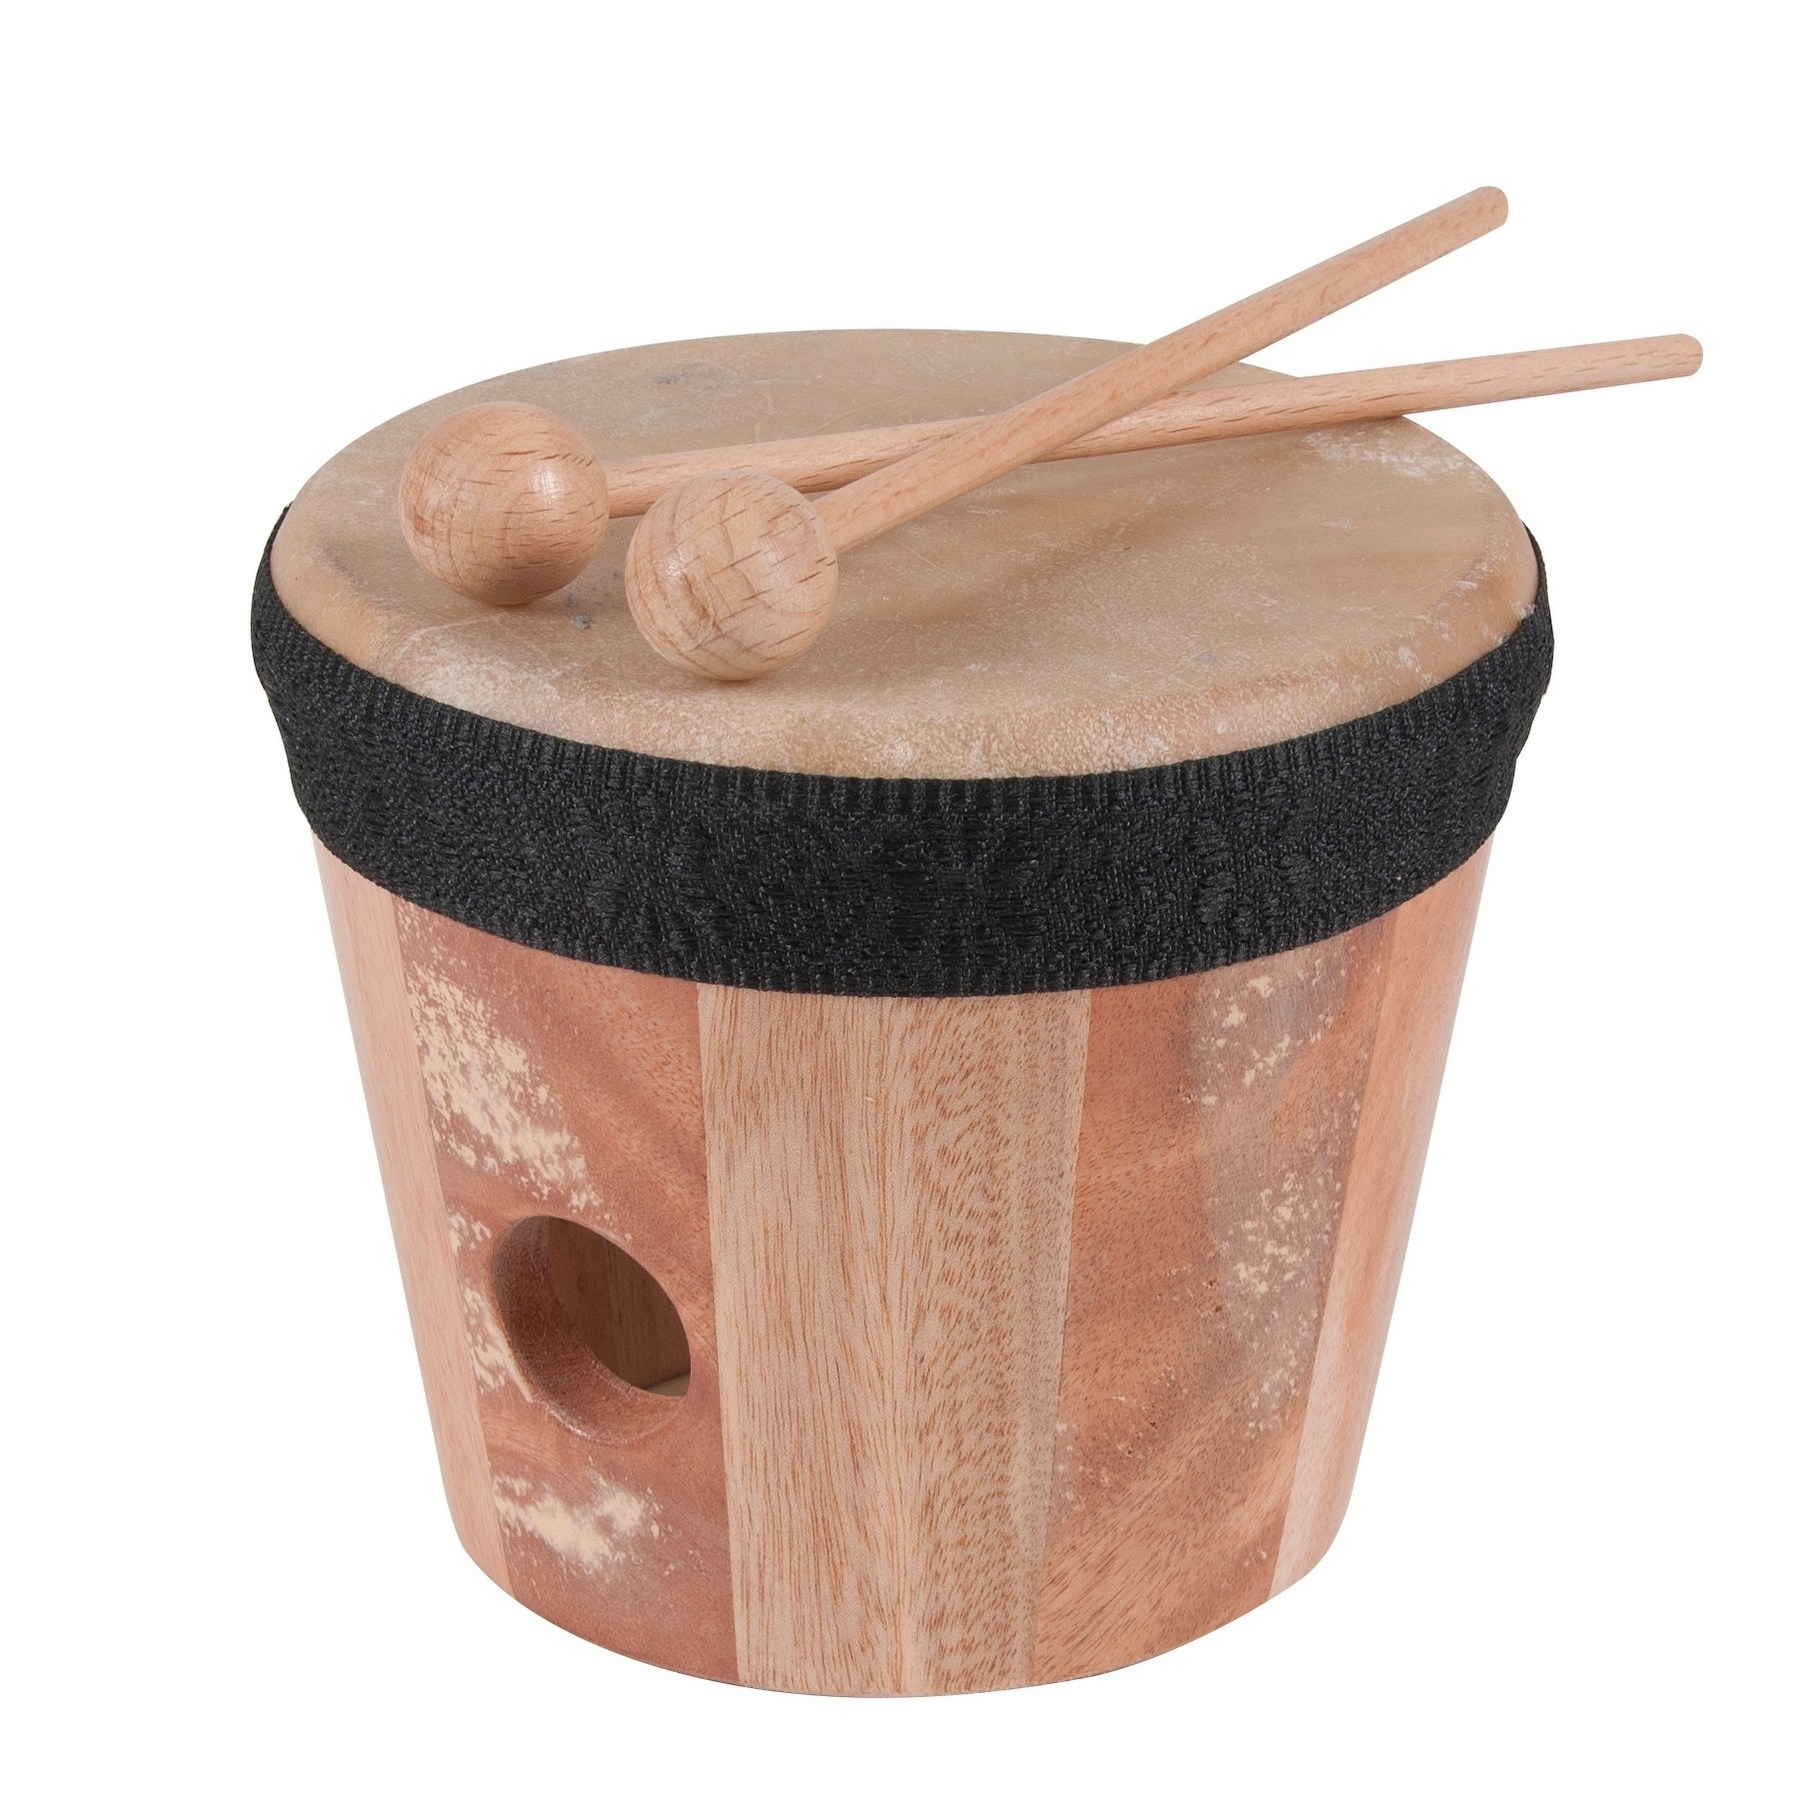 Westco Childs Drum Musical Instrument Toy